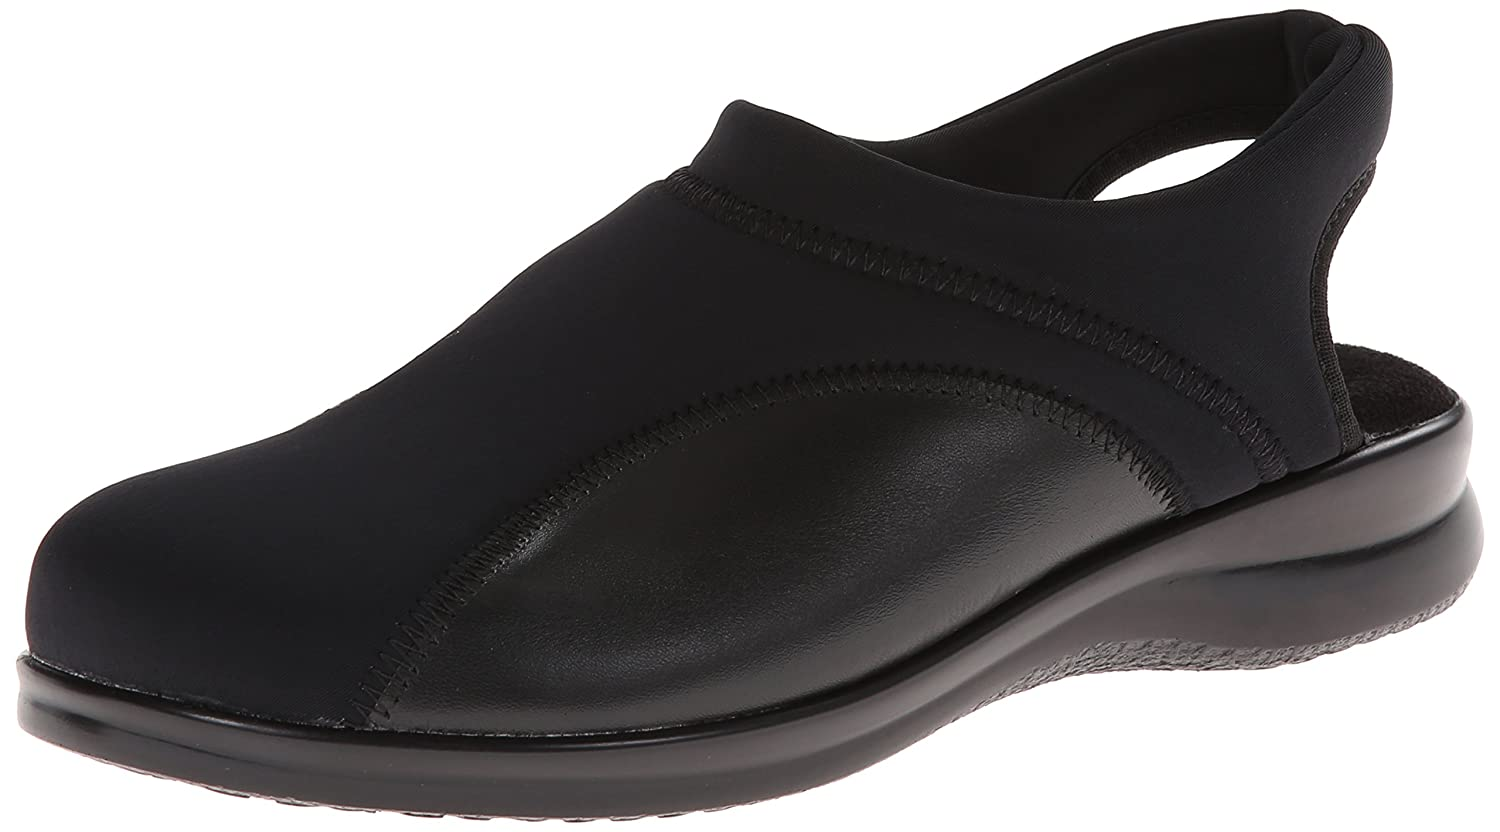 Flexus by Spring Step Women's Flexia Flat B00CP602MS 38 EU/7.5-8 M US|Black